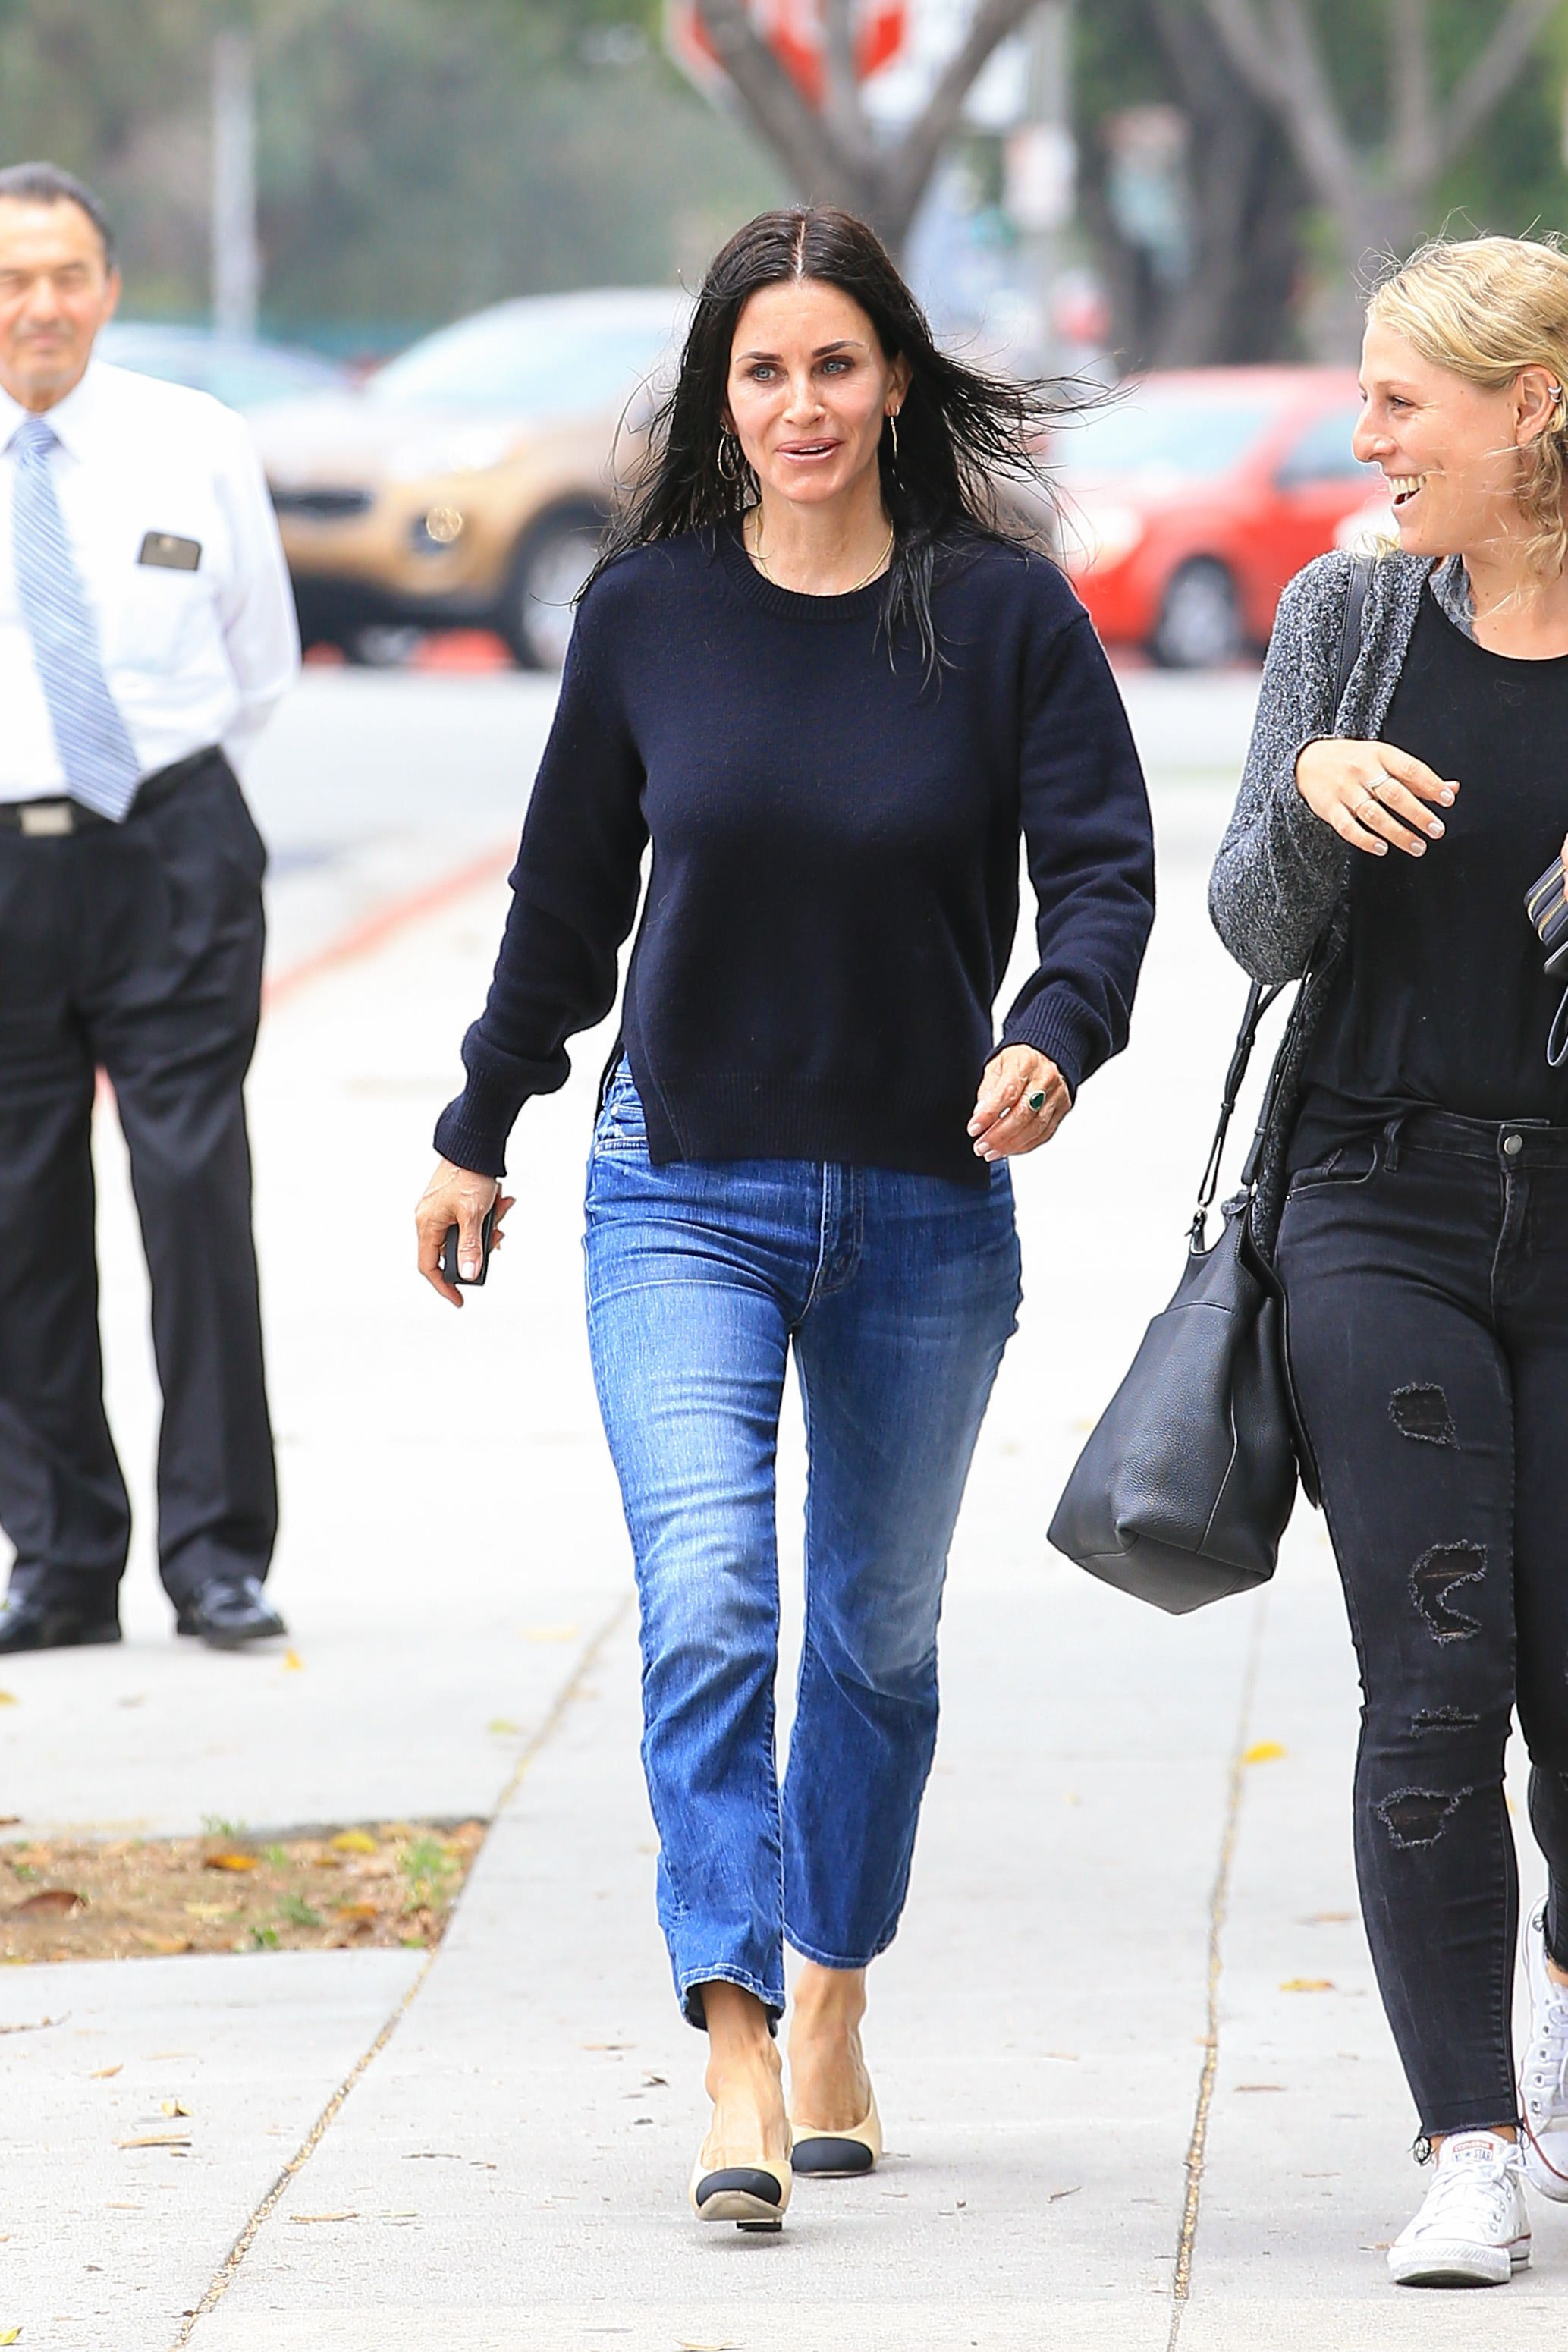 Courteney Cox Stopped Getting Fillers, Says She Wants To Age More